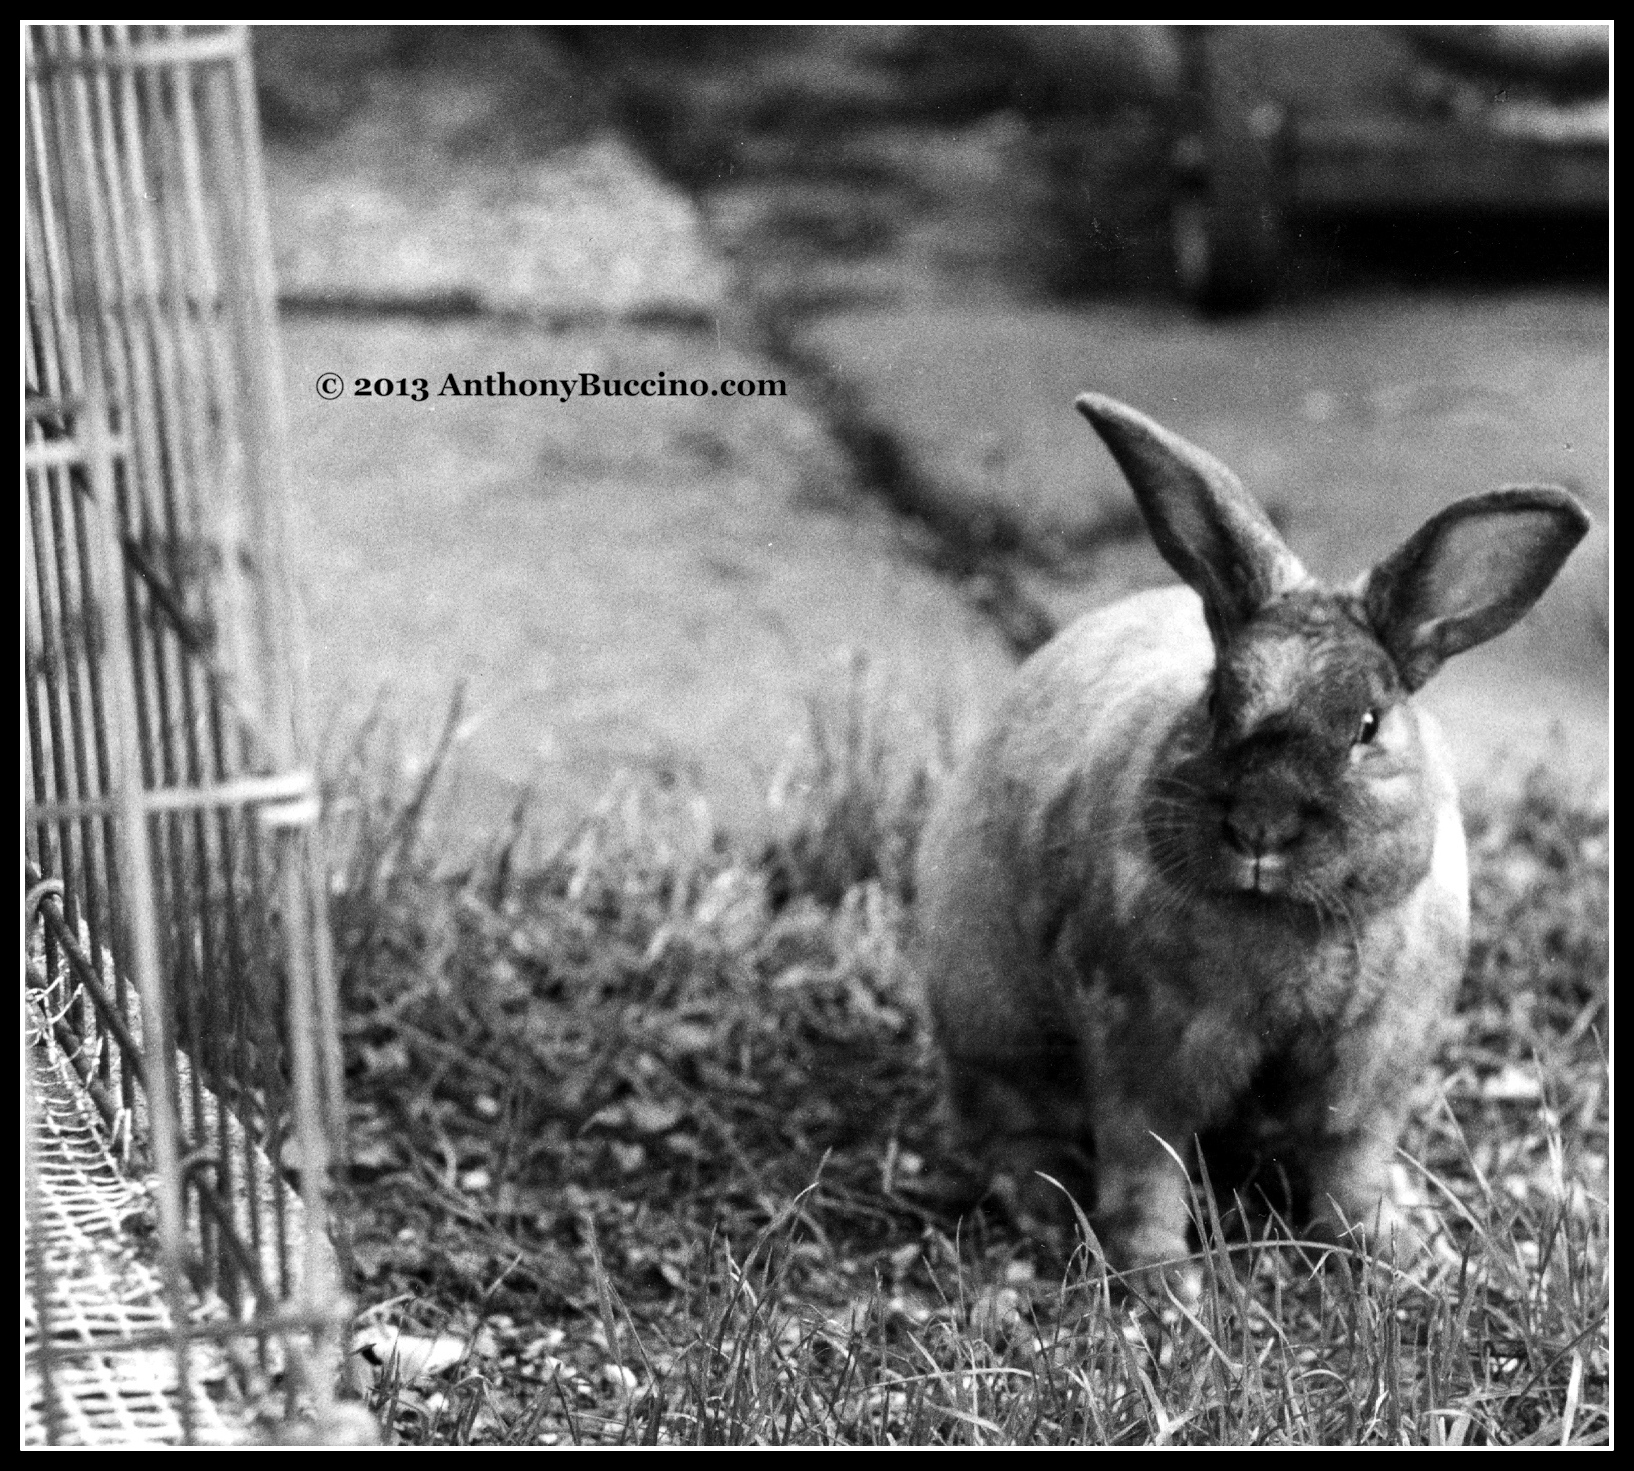 Murphy the rabbit, photo by Anthony Buccino, all rights reserved